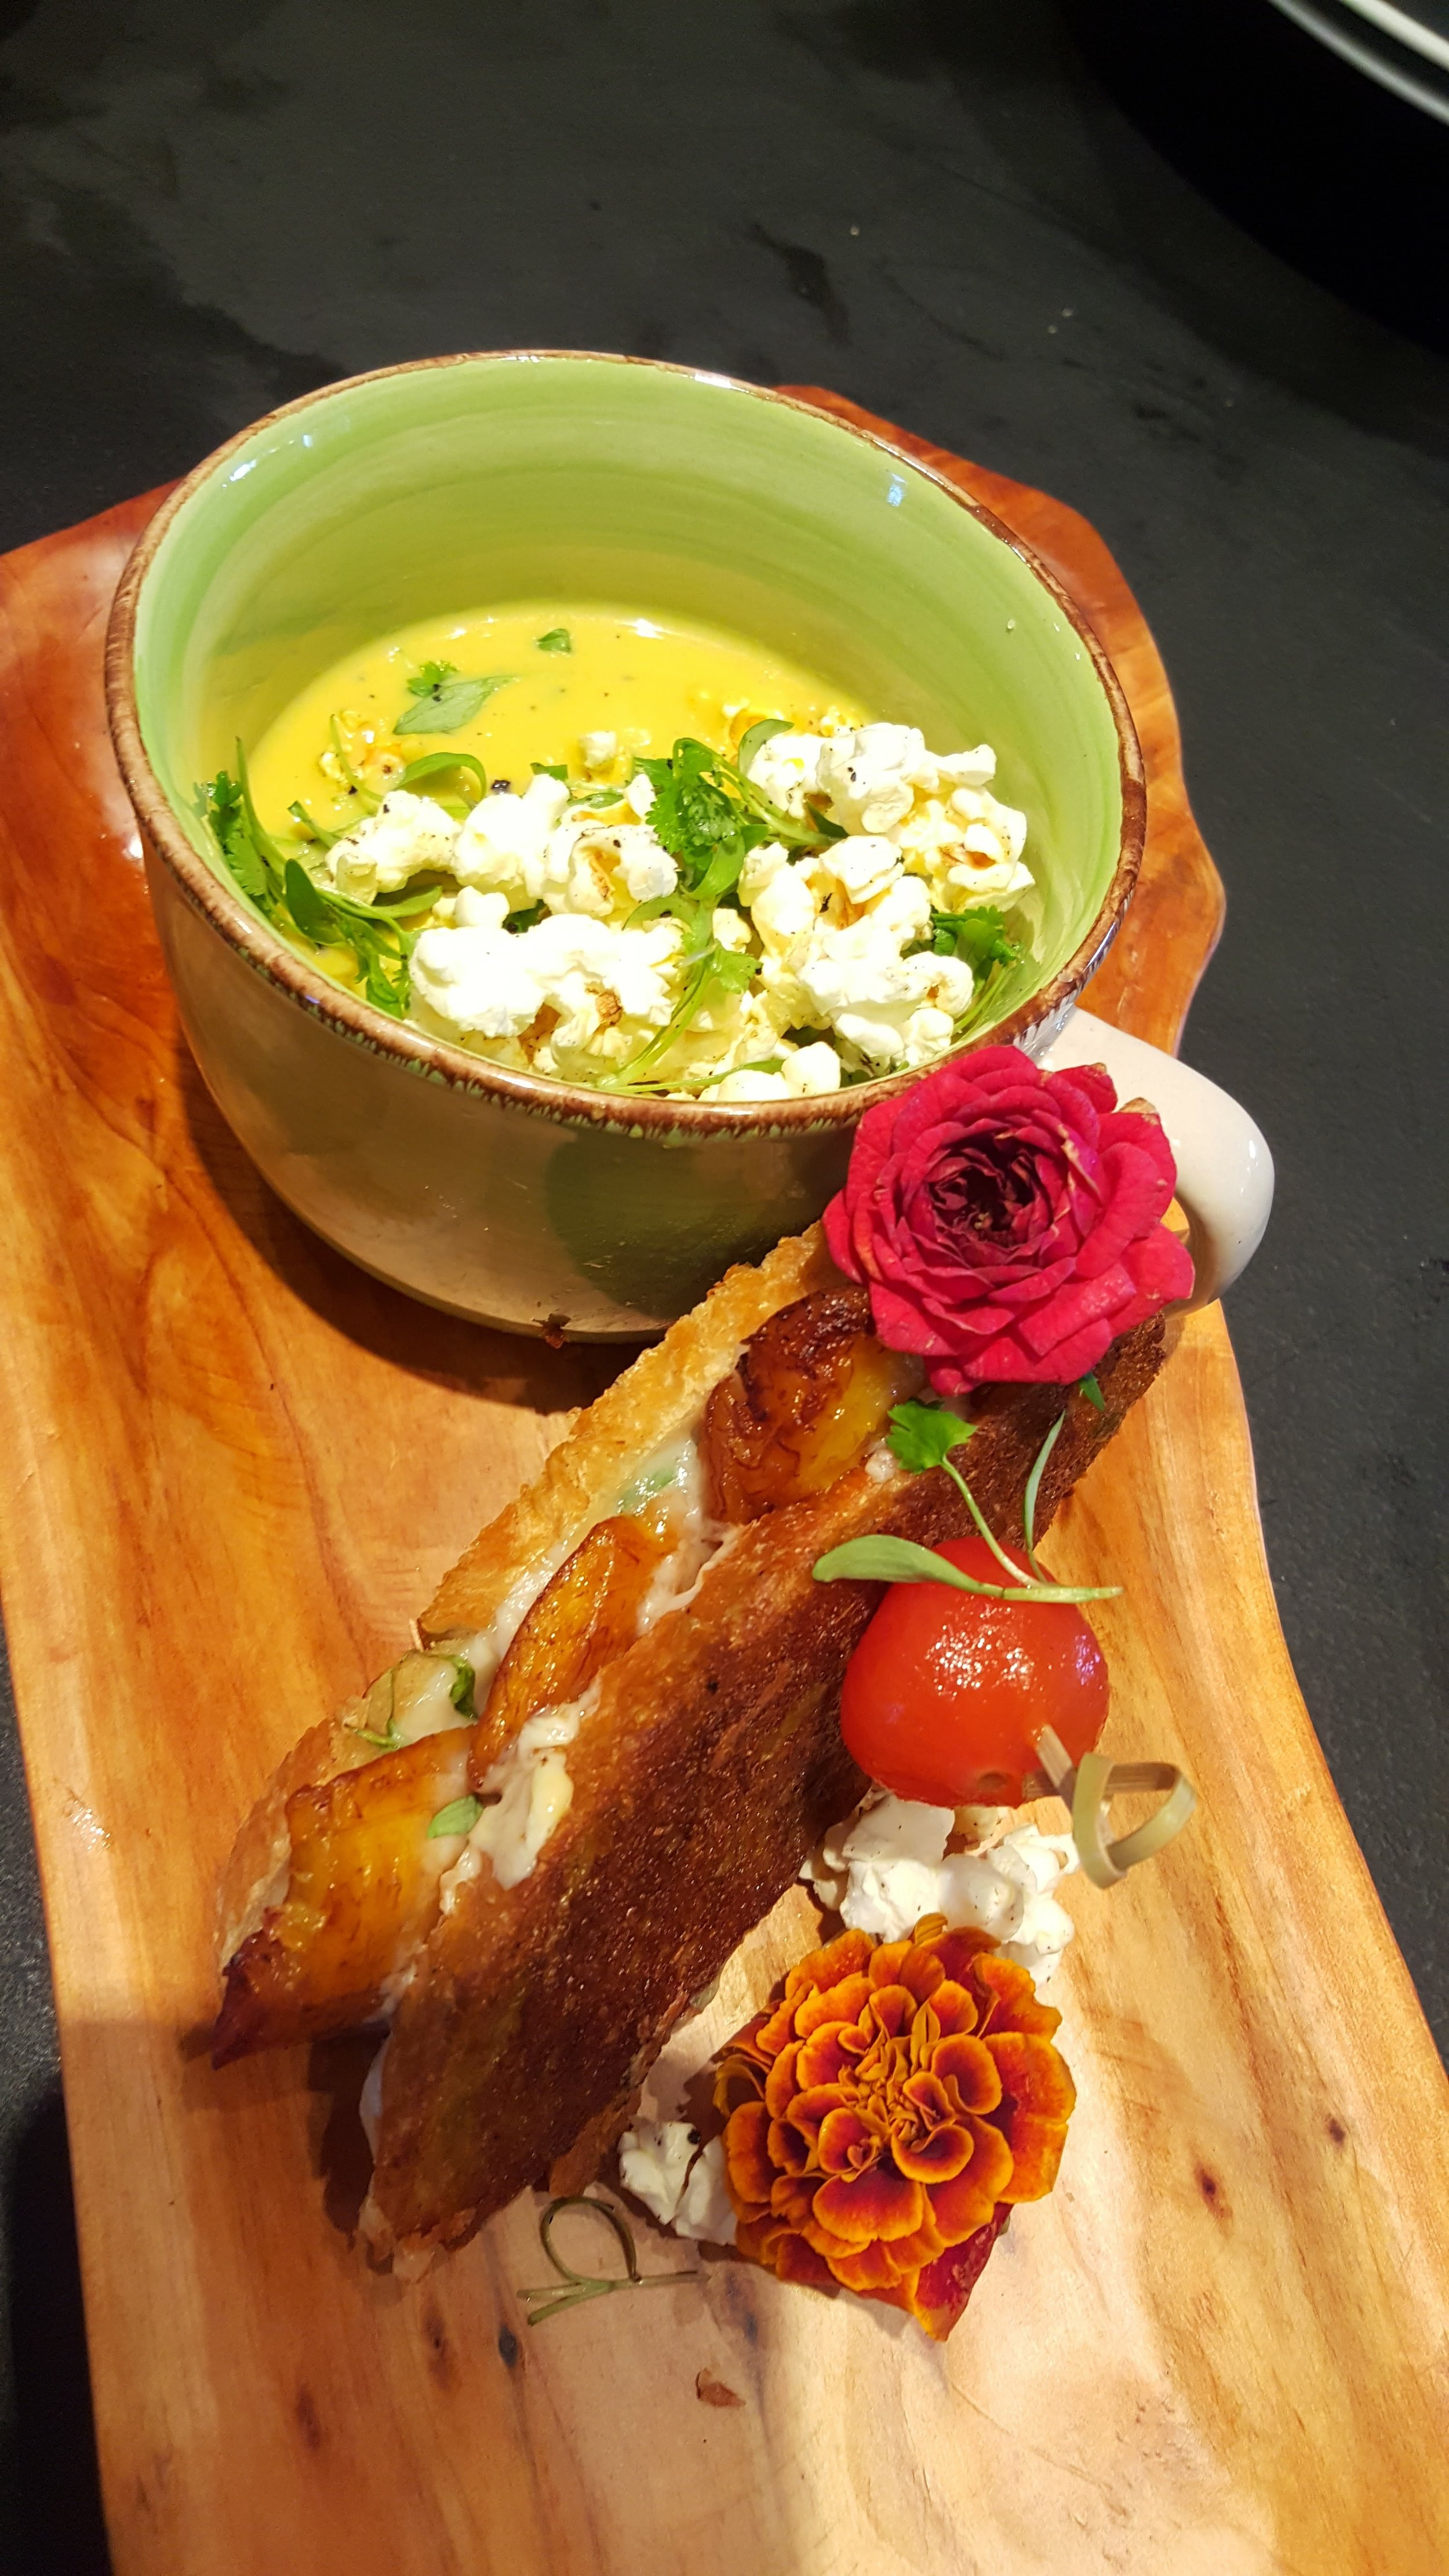 Grilled cheese and plantain sandwich with popcorn chowder